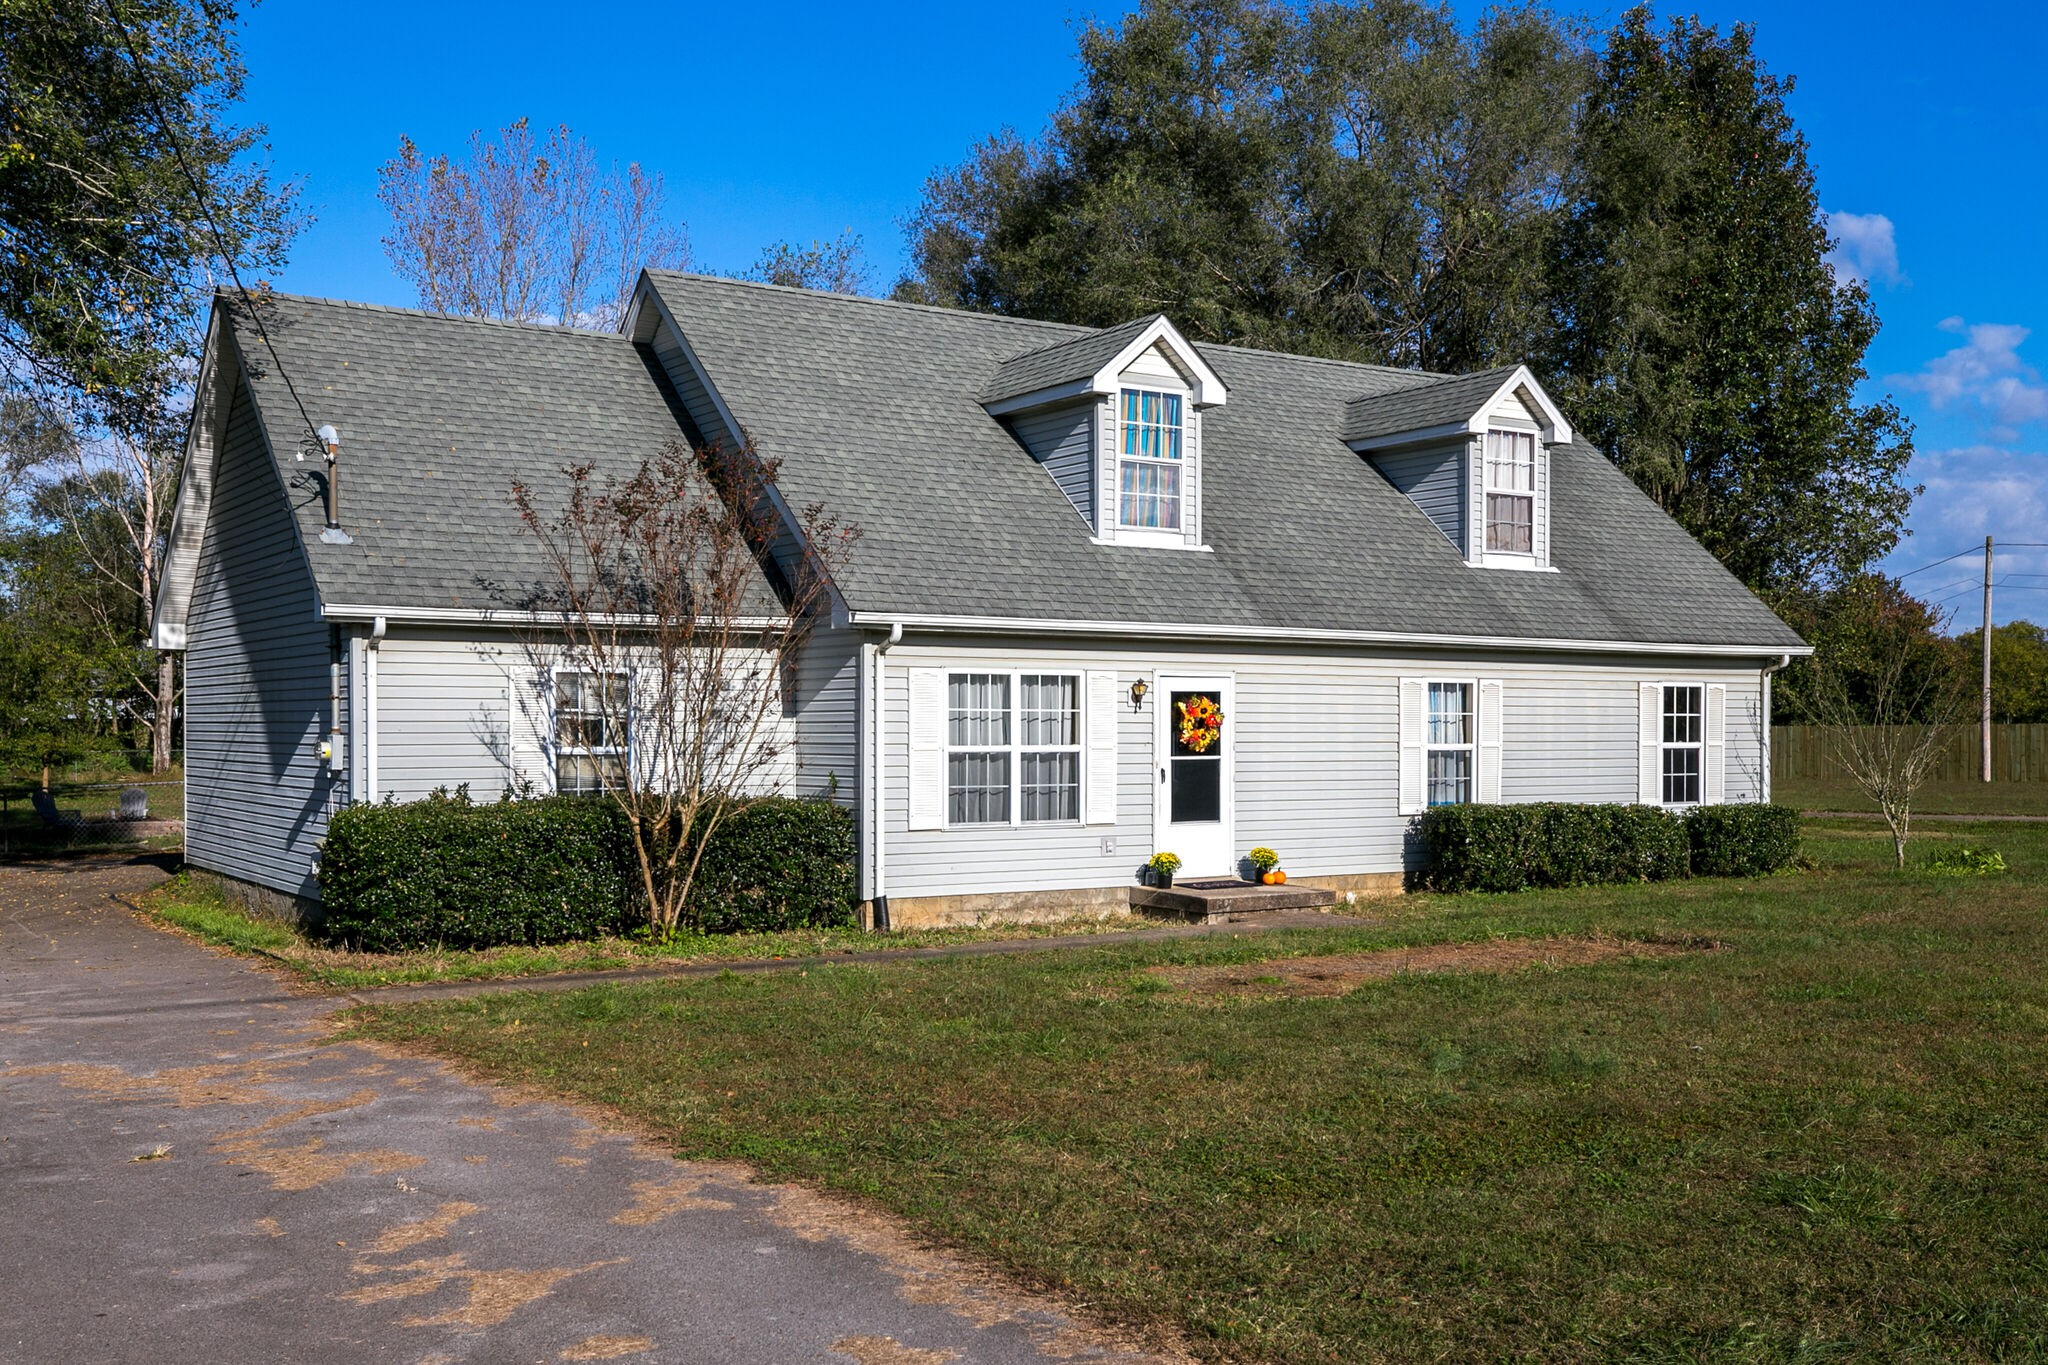 Rare Find!  Nearly an Acre - Flat, Treed Lot!!!  NO HOA.  3 Bedrooms 2 1/2 baths.  An ADDITIONAL TWO Large Bonus Rooms upstairs!  Custom Cabinetry in Kitchen, New Flooring, Appliances STAY (including Maytag W/D).  Double-Pane Windows.  Great schools!